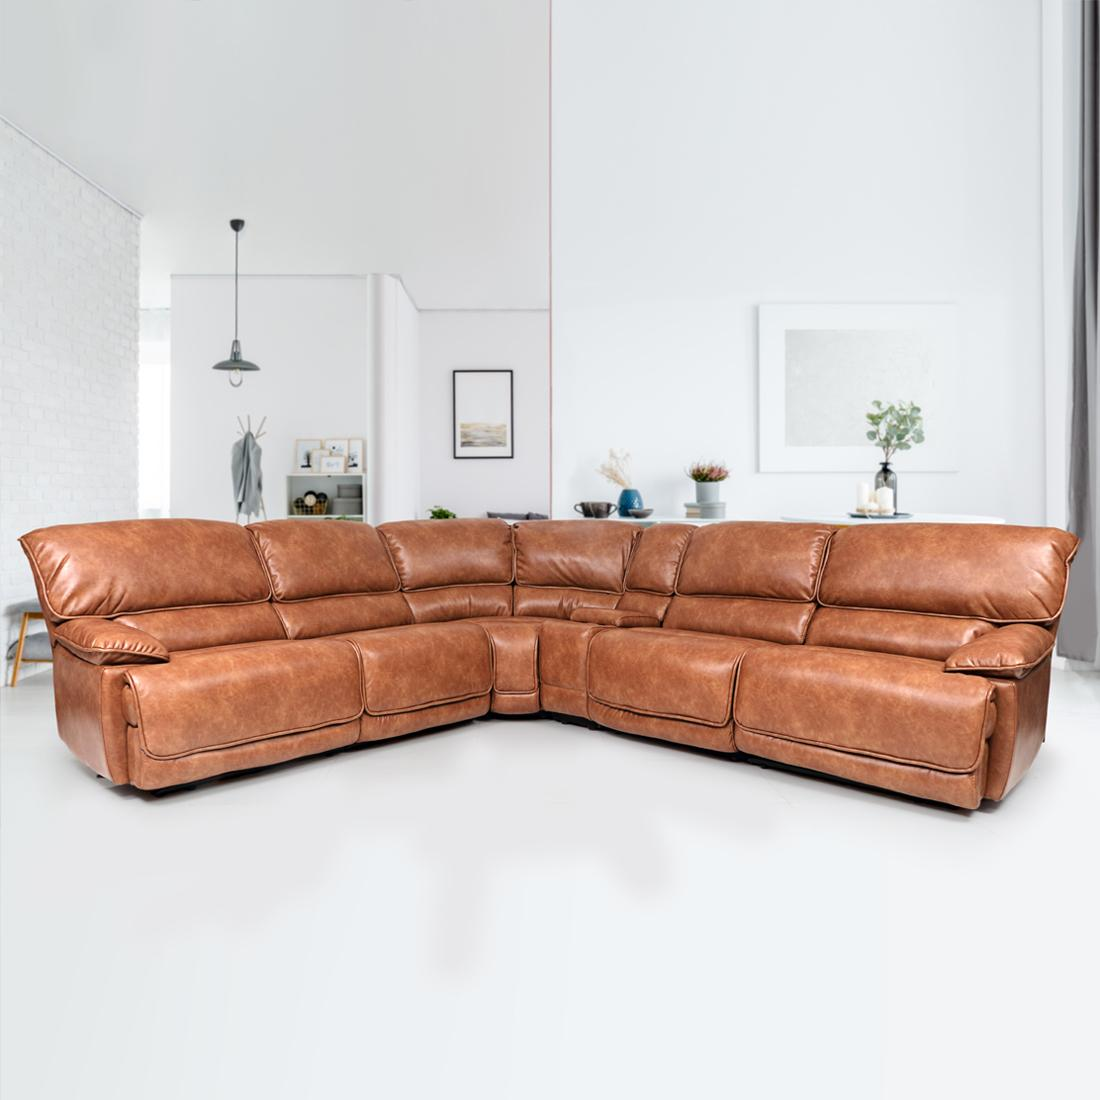 5 Seater Recliner Sofa Online At Best